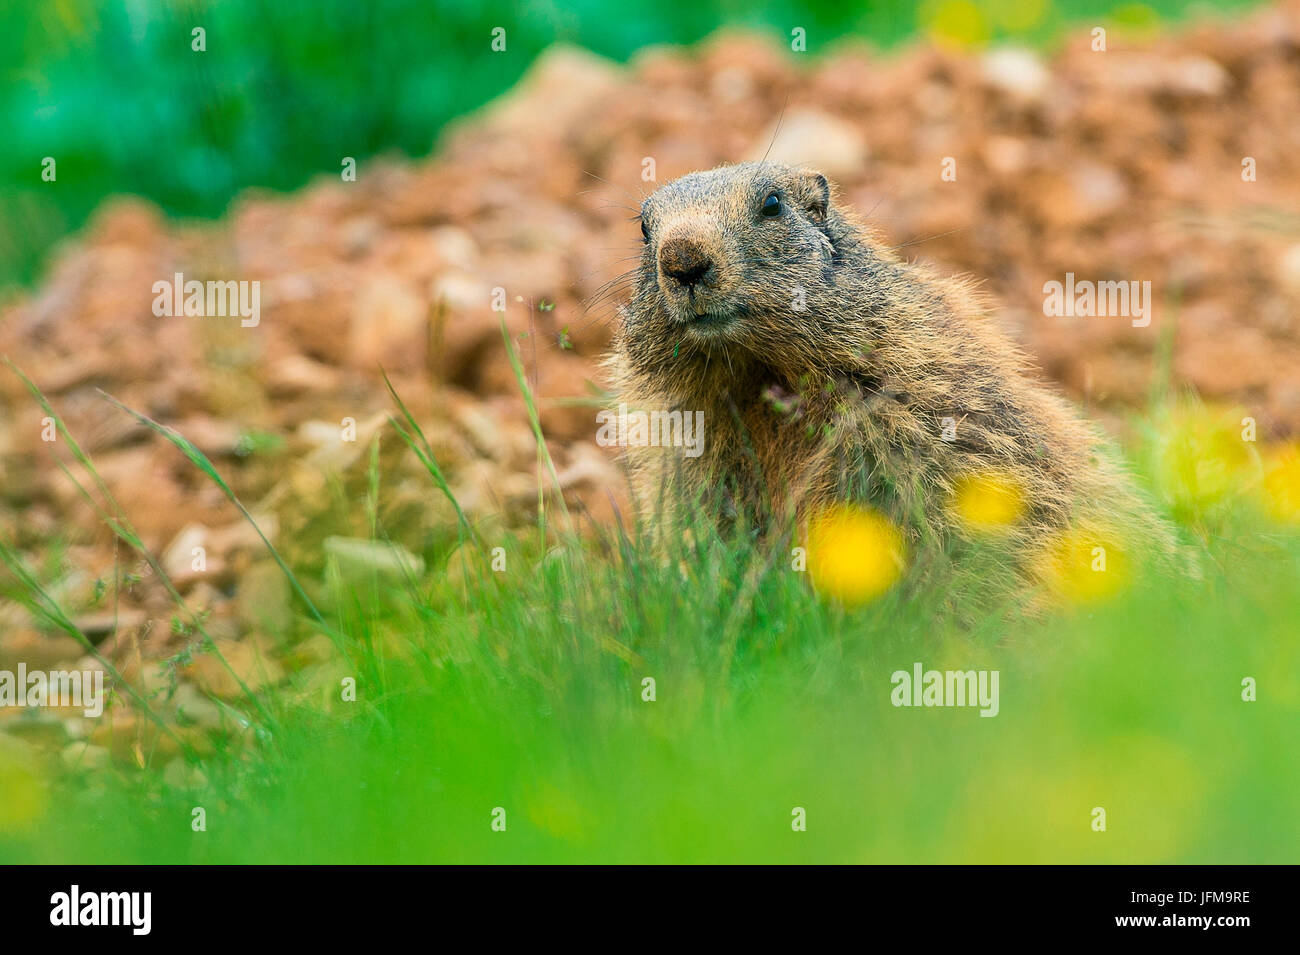 Gaver, Bagolino, Lombardy, Italy Portrait of a marmot sitting tripped in the plain of Gaver - Stock Image